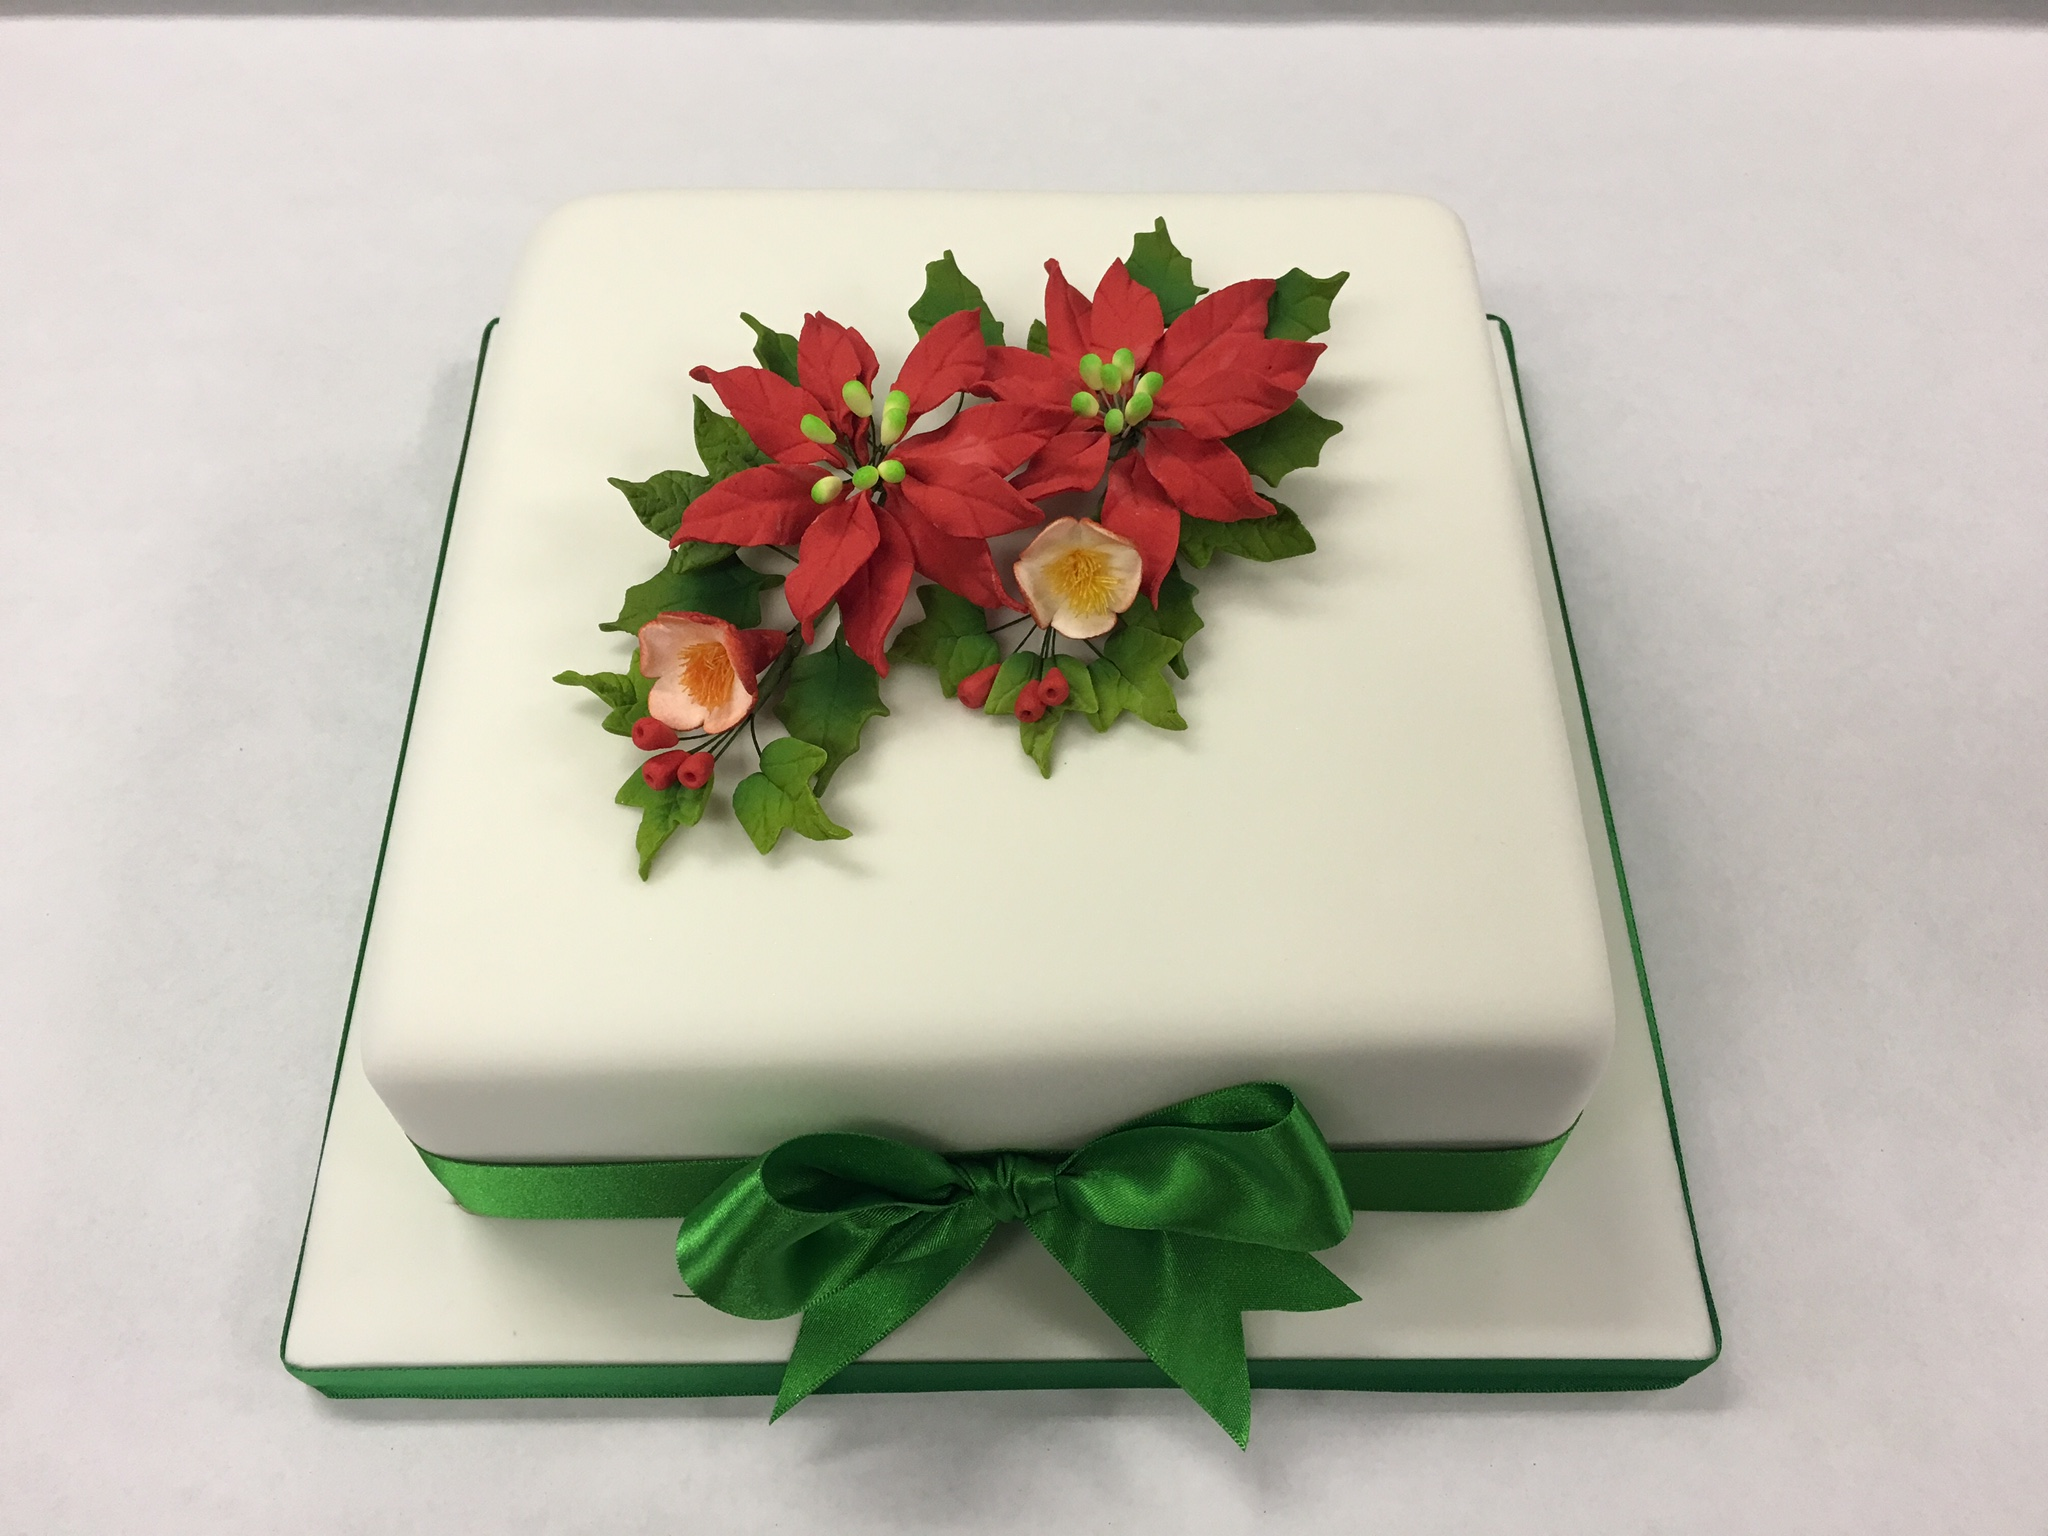 9 Square Wedding Cakes With Poinsettias Photo Red